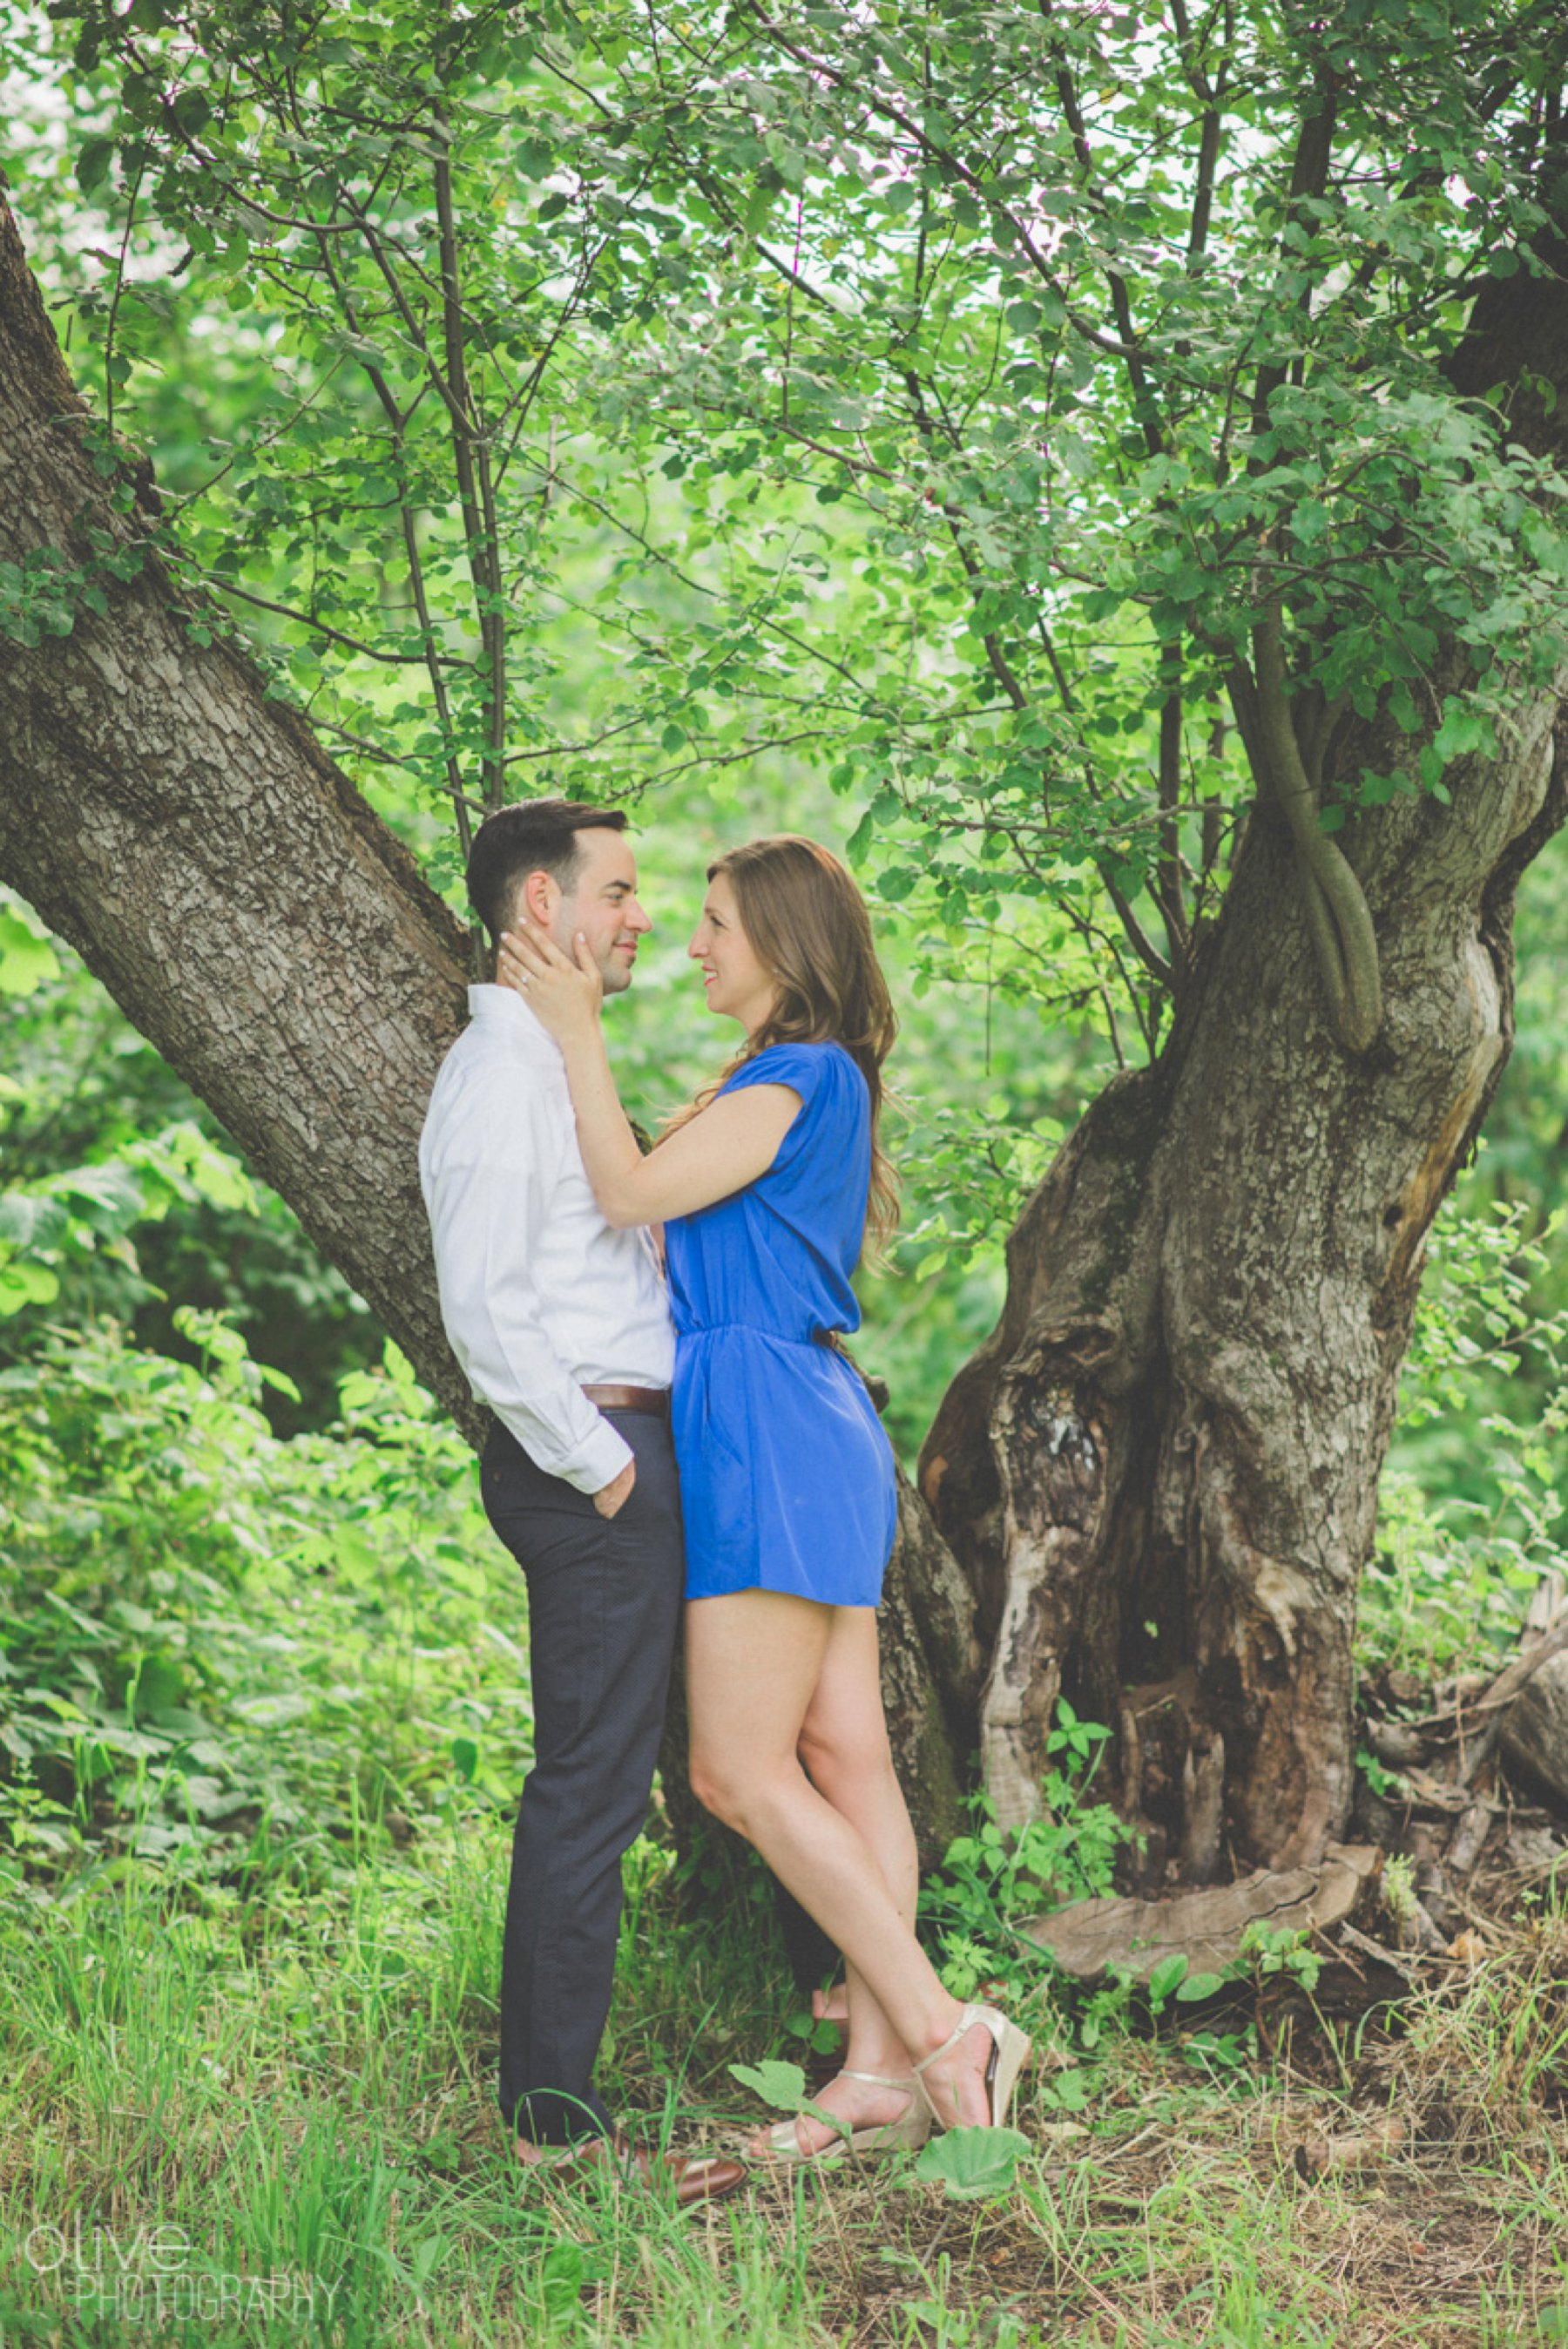 Toronto Wedding Photographer - Olive Photography_0815